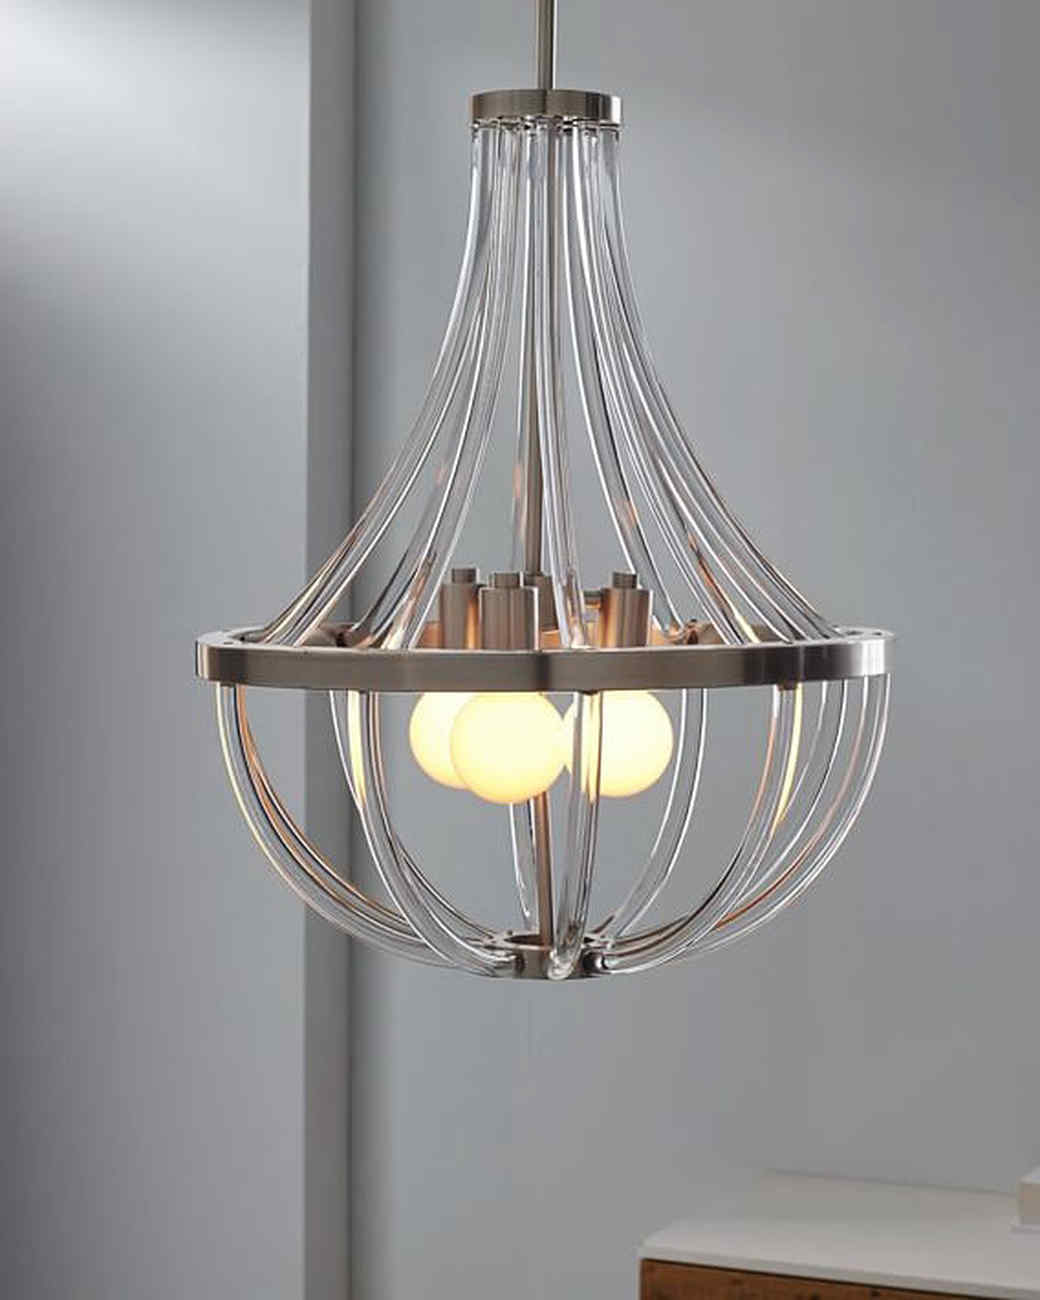 2-lucite-west-elm-chand.jpg